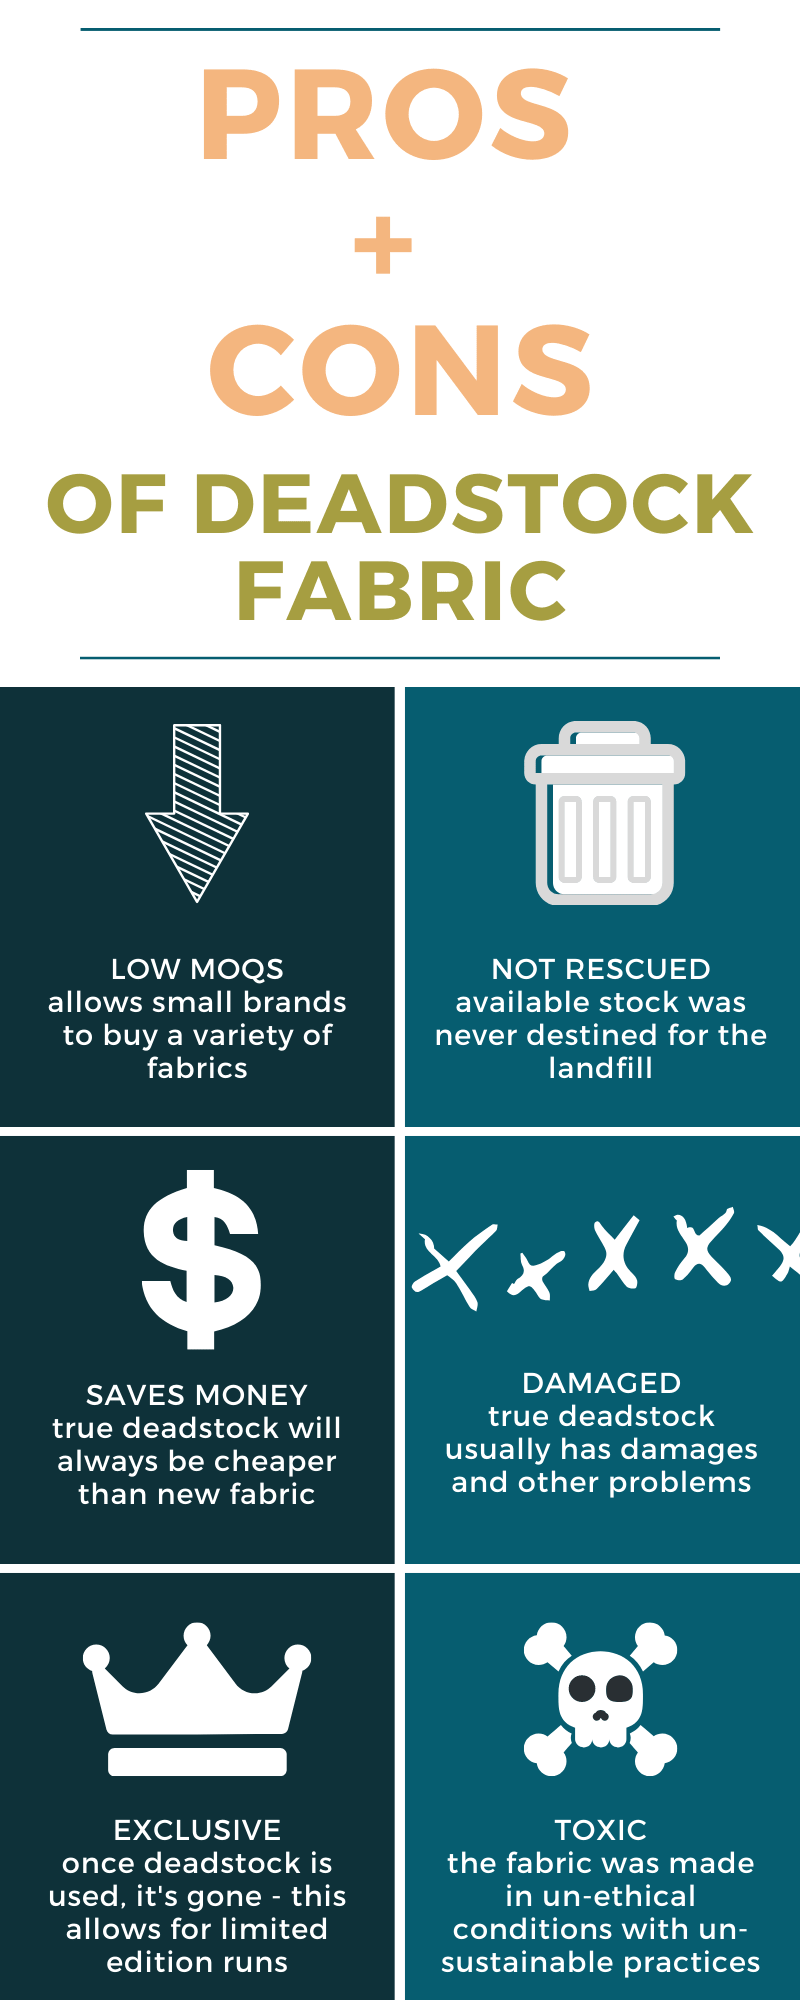 deadstock fabric pros and cons infographic